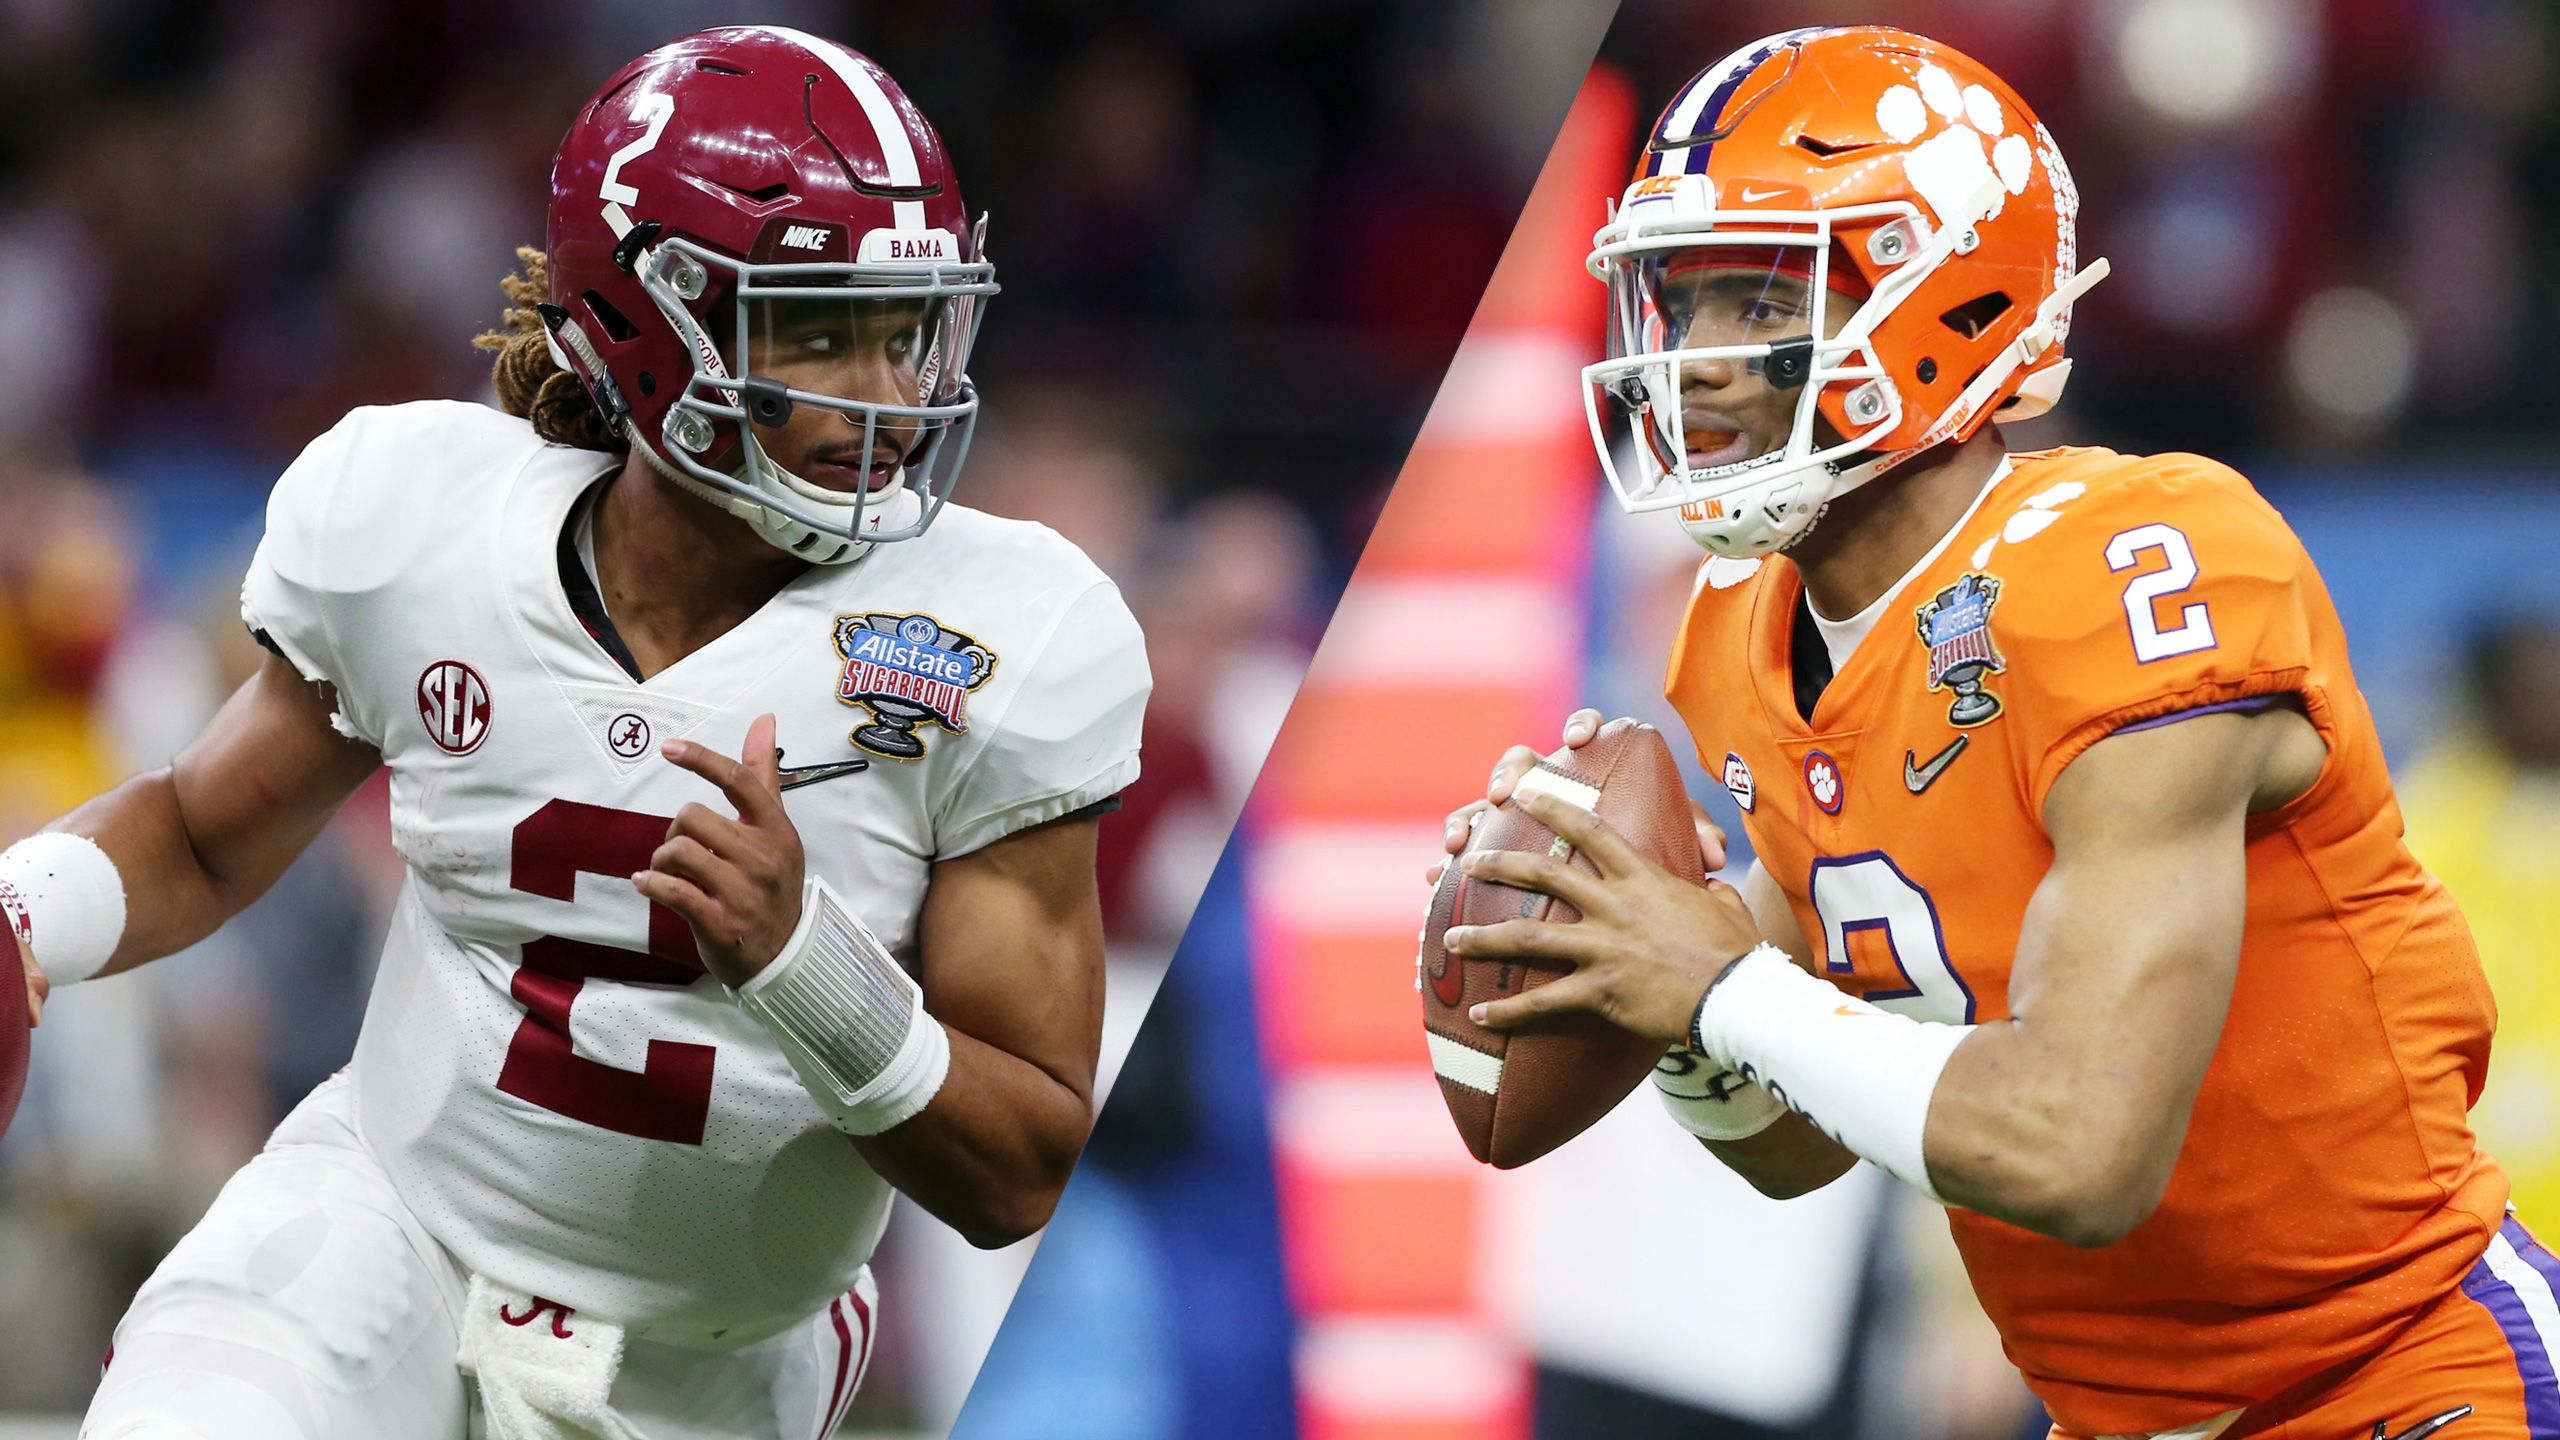 Command Center: 2018 CFP Semifinal at the Allstate Sugar Bowl